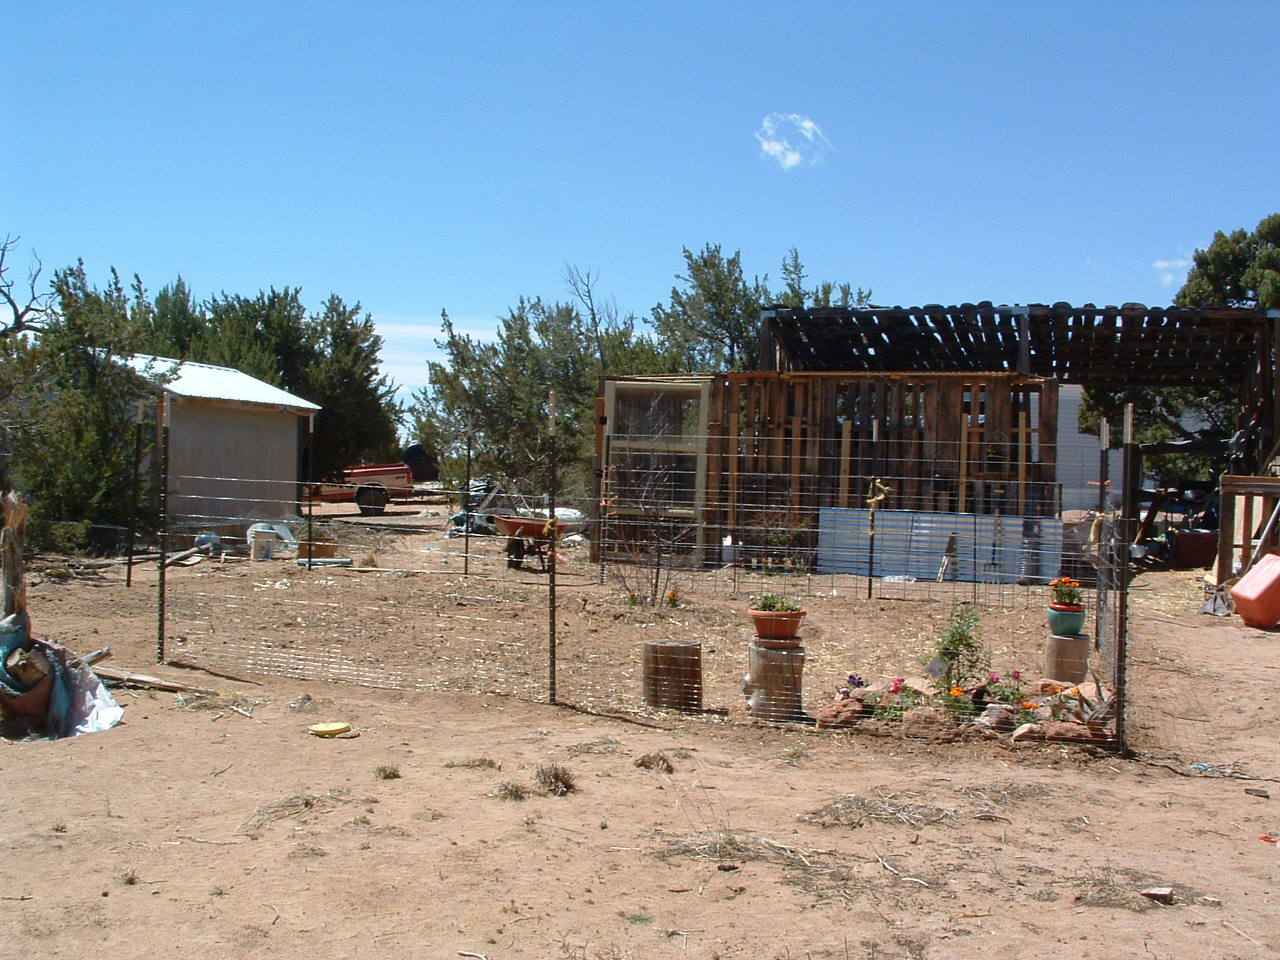 Garden area and chicken run and coop. And my puttering/planning/work area.